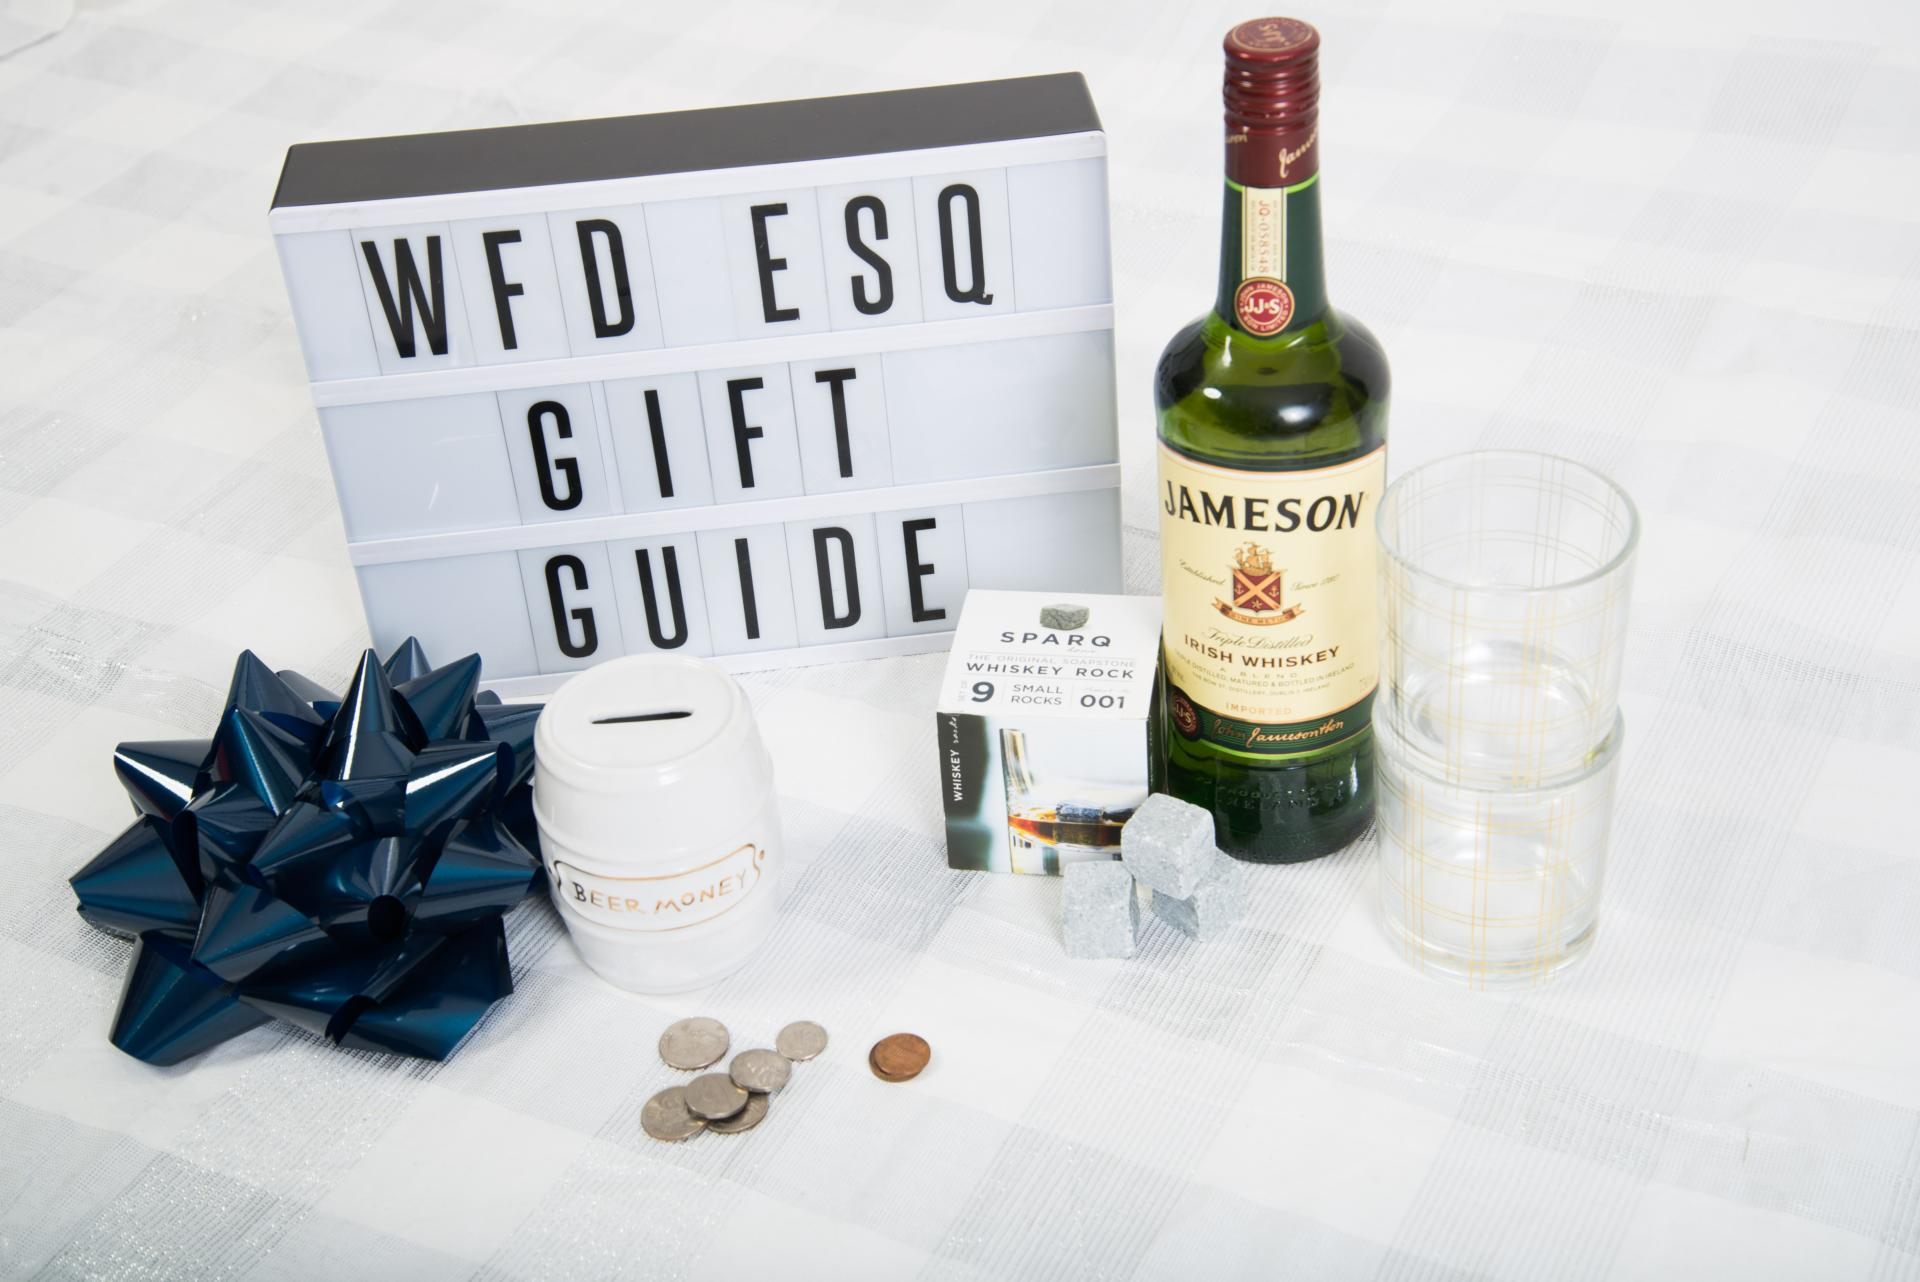 CELEBRATE: Gift Guide for Him